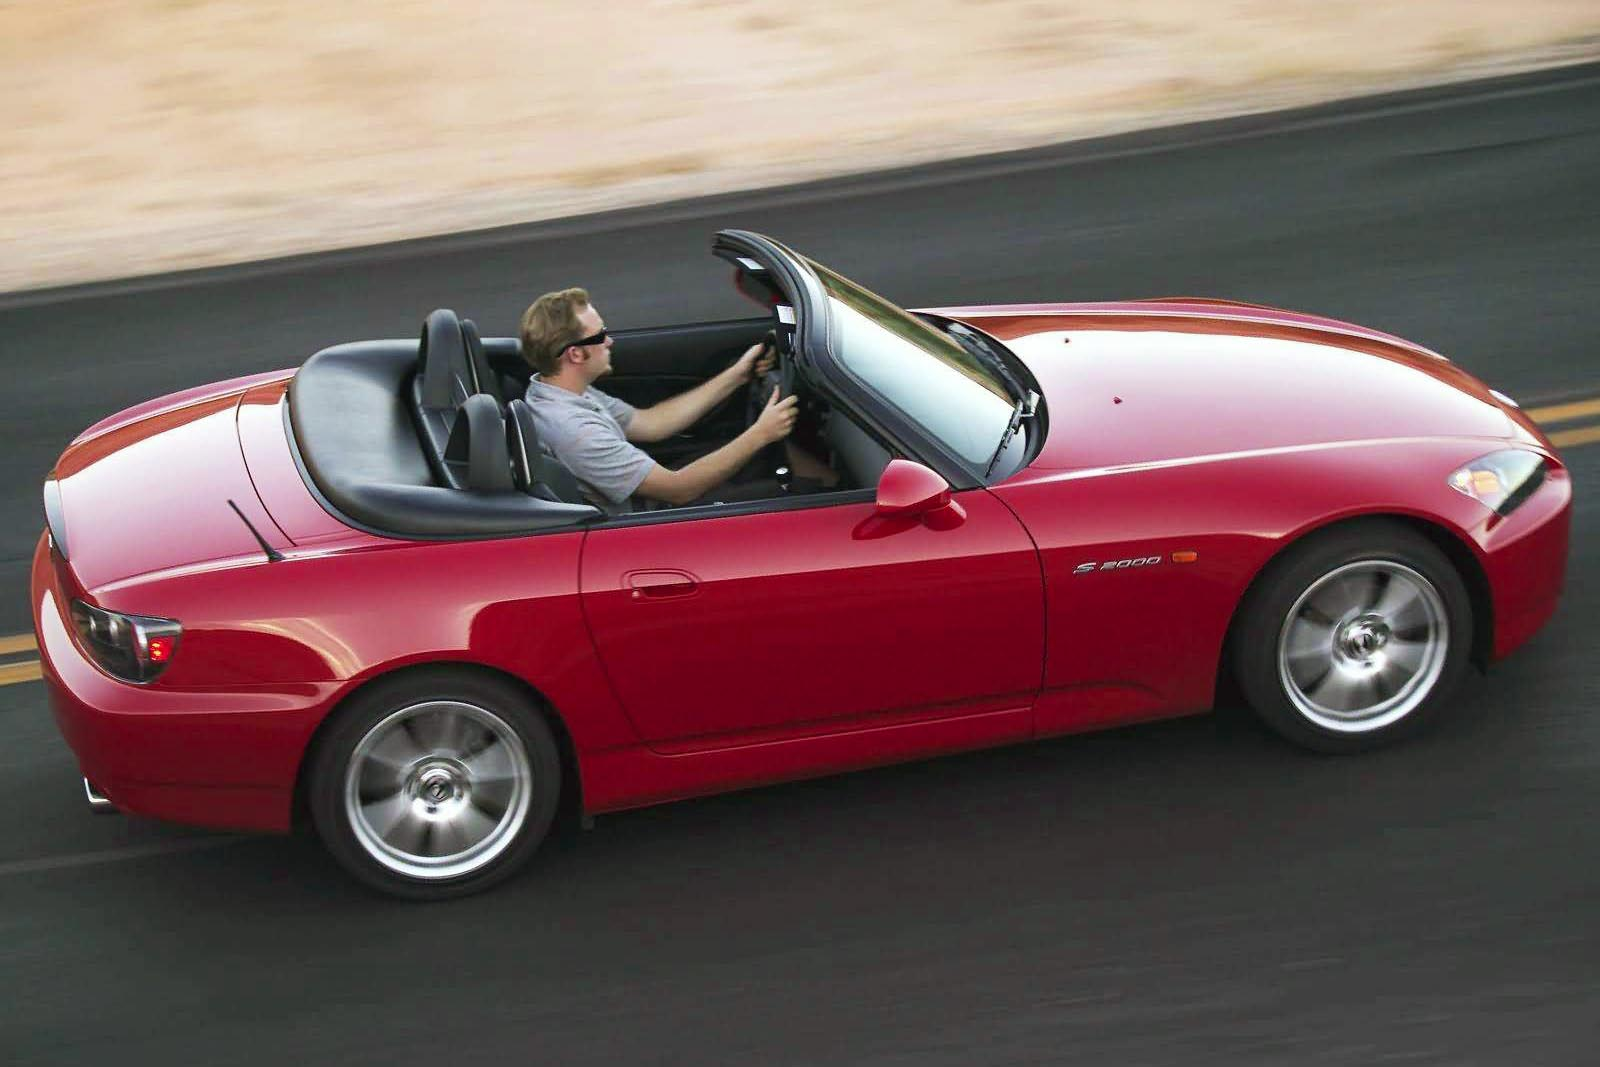 Another of Honda's VTEC-equipped playthings, the S2000 is no longer with us, but it remains a popular used roadster buy. Mainly, that's because you get a high-strung four-cylinder engine that loves to scream, frisky-pants handling, grip for days, and a slick, stubby and short six-speed manual transmission as the only gear-shifting option. As a pure drivers car should be, this one makes you work for your thrills, and it's worth every bit of effort.